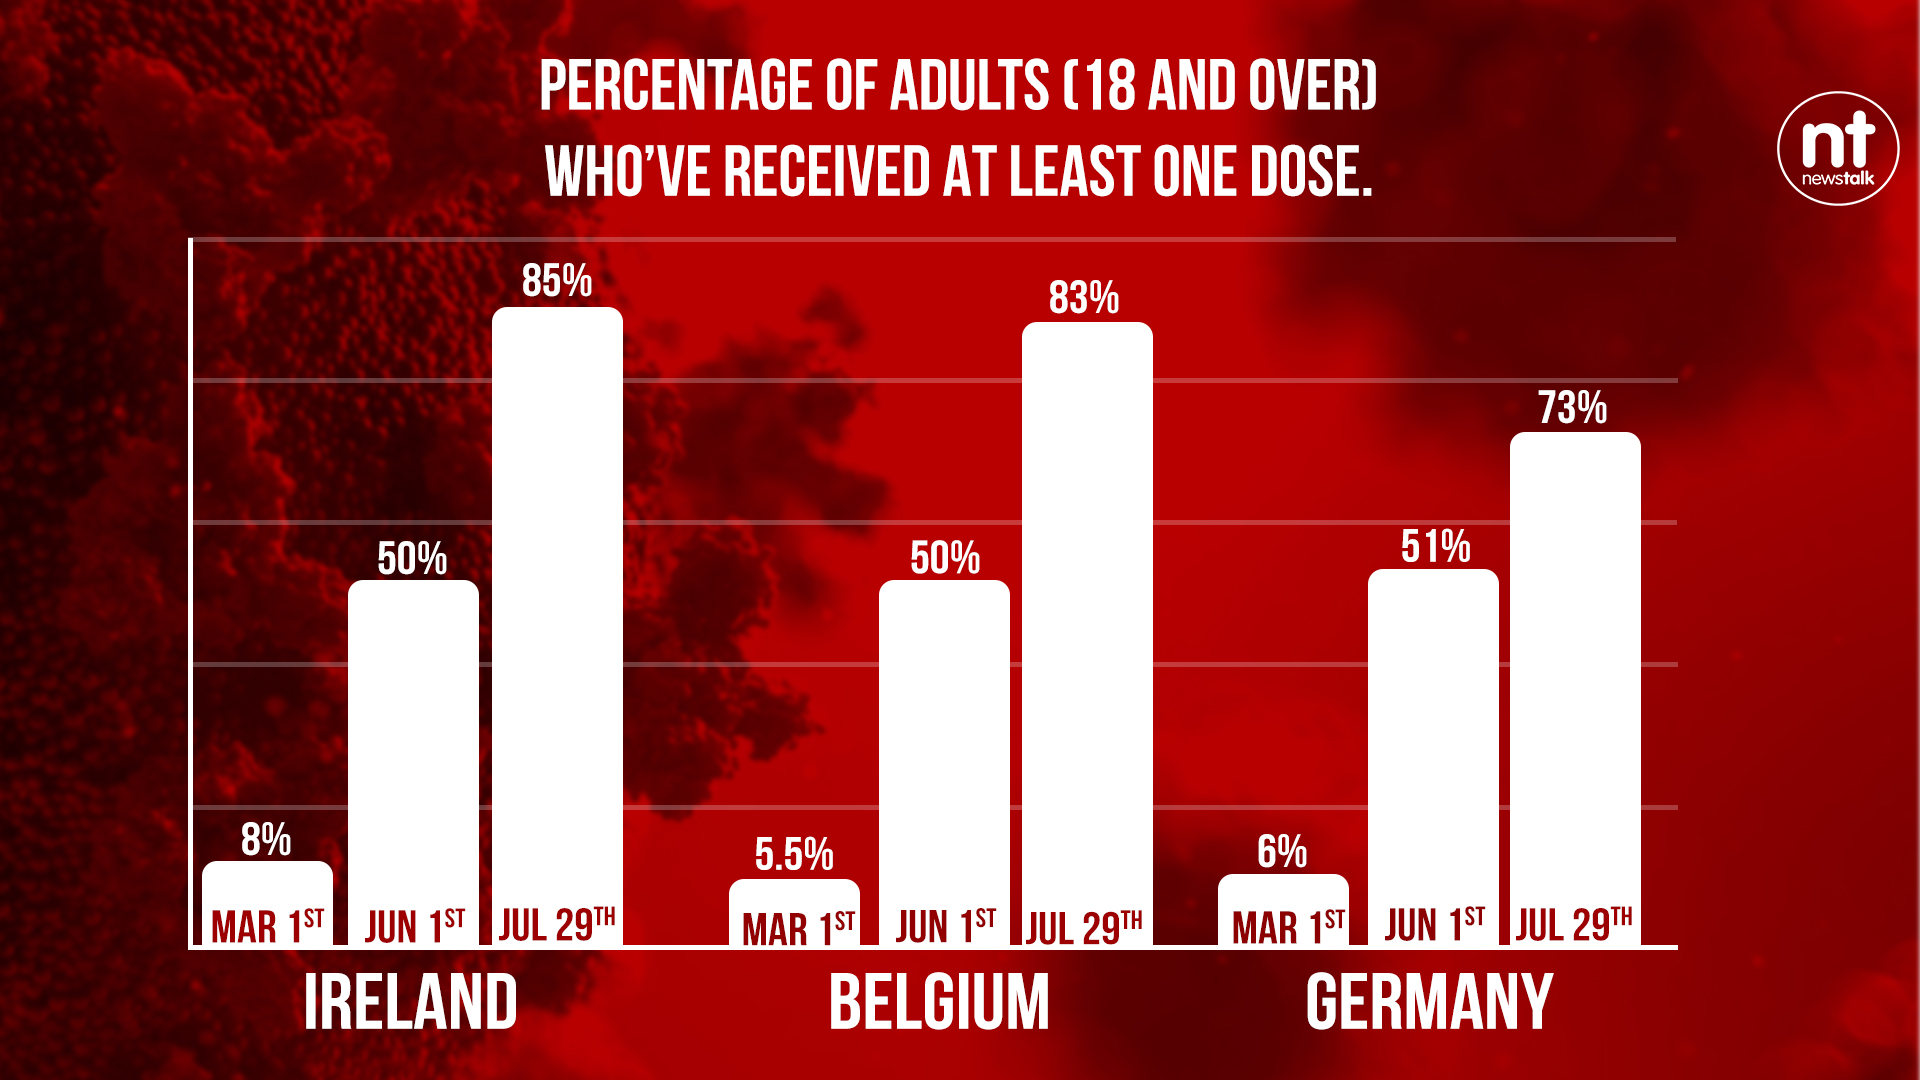 Chart comparing Ireland's vaccine rollout to Belgium and Germany